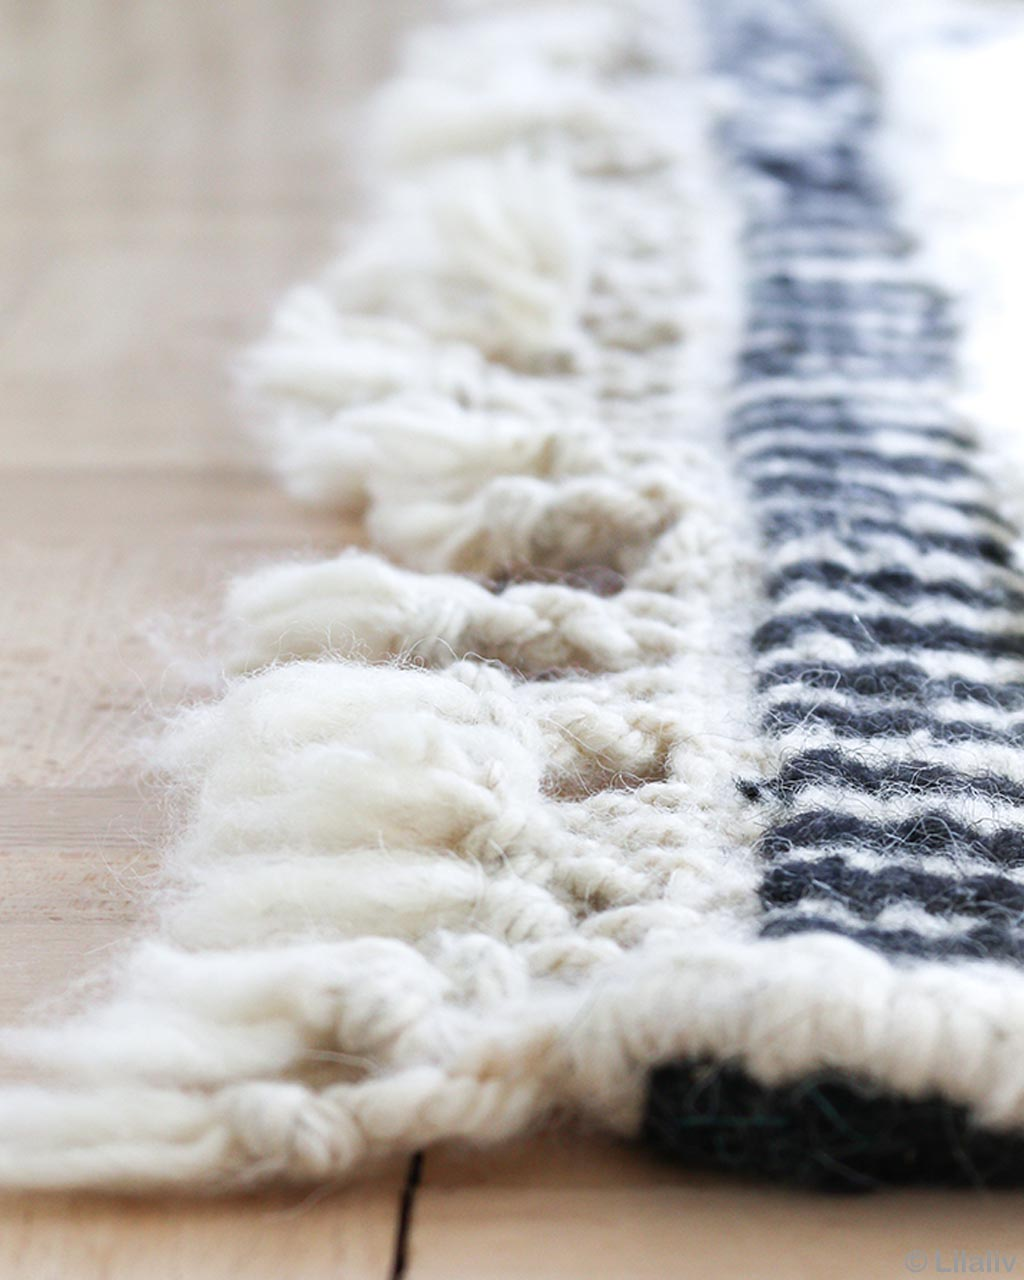 handmade woolen on wooden floor beni ourain rugs